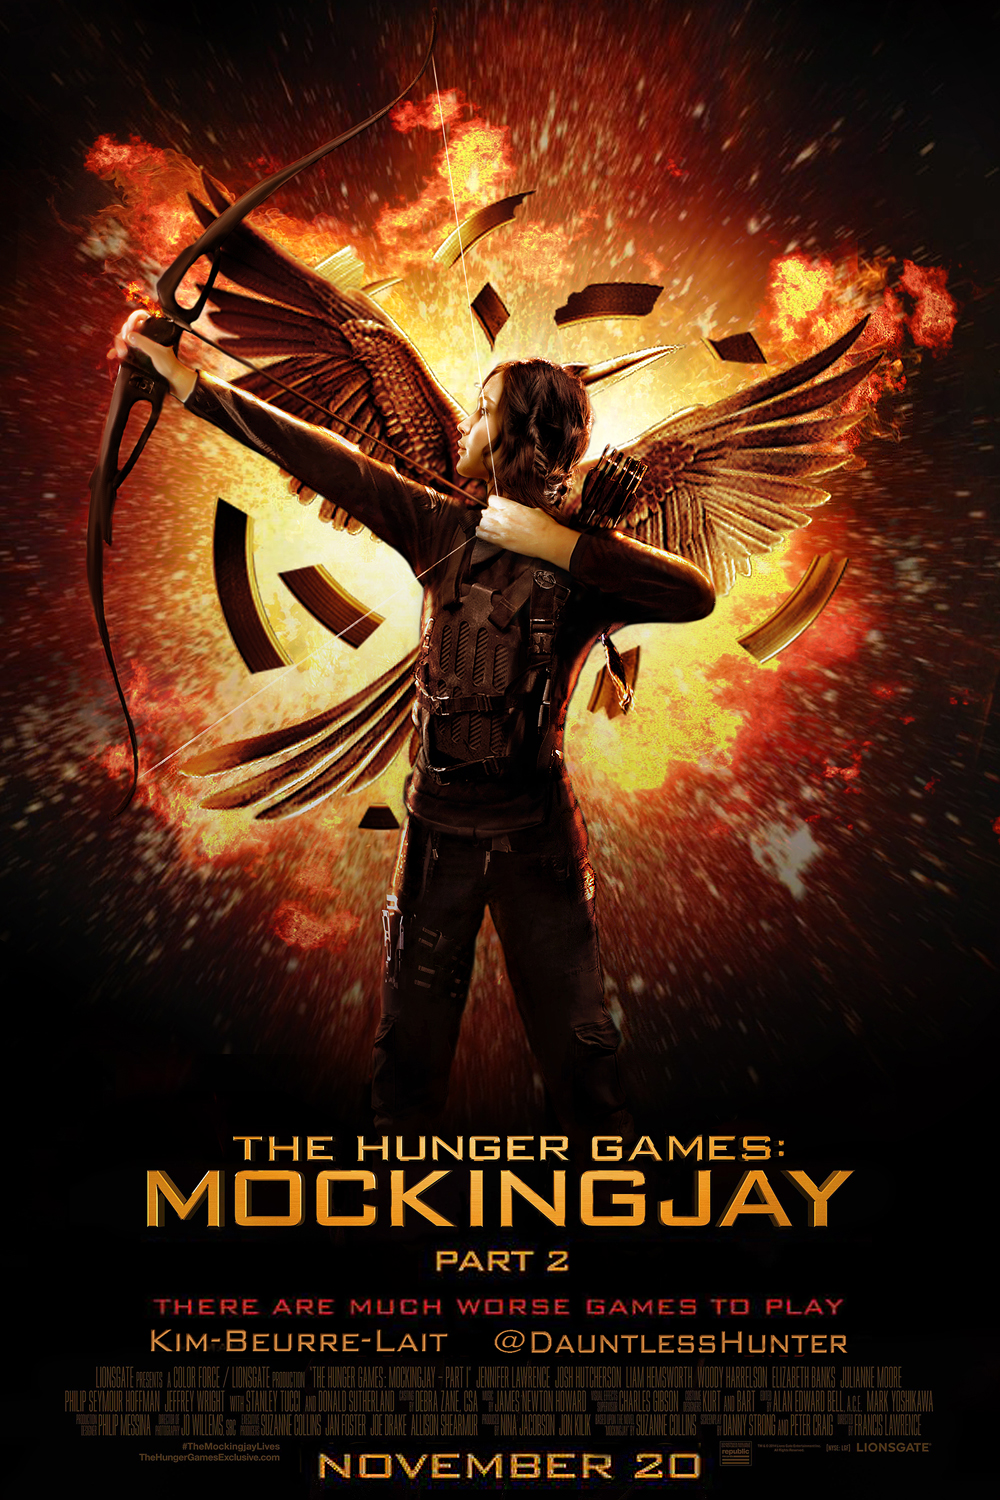 the assassination of a president the hunger games mockingjay the assassination of a president the hunger games mockingjay part 2 2015 21st century films